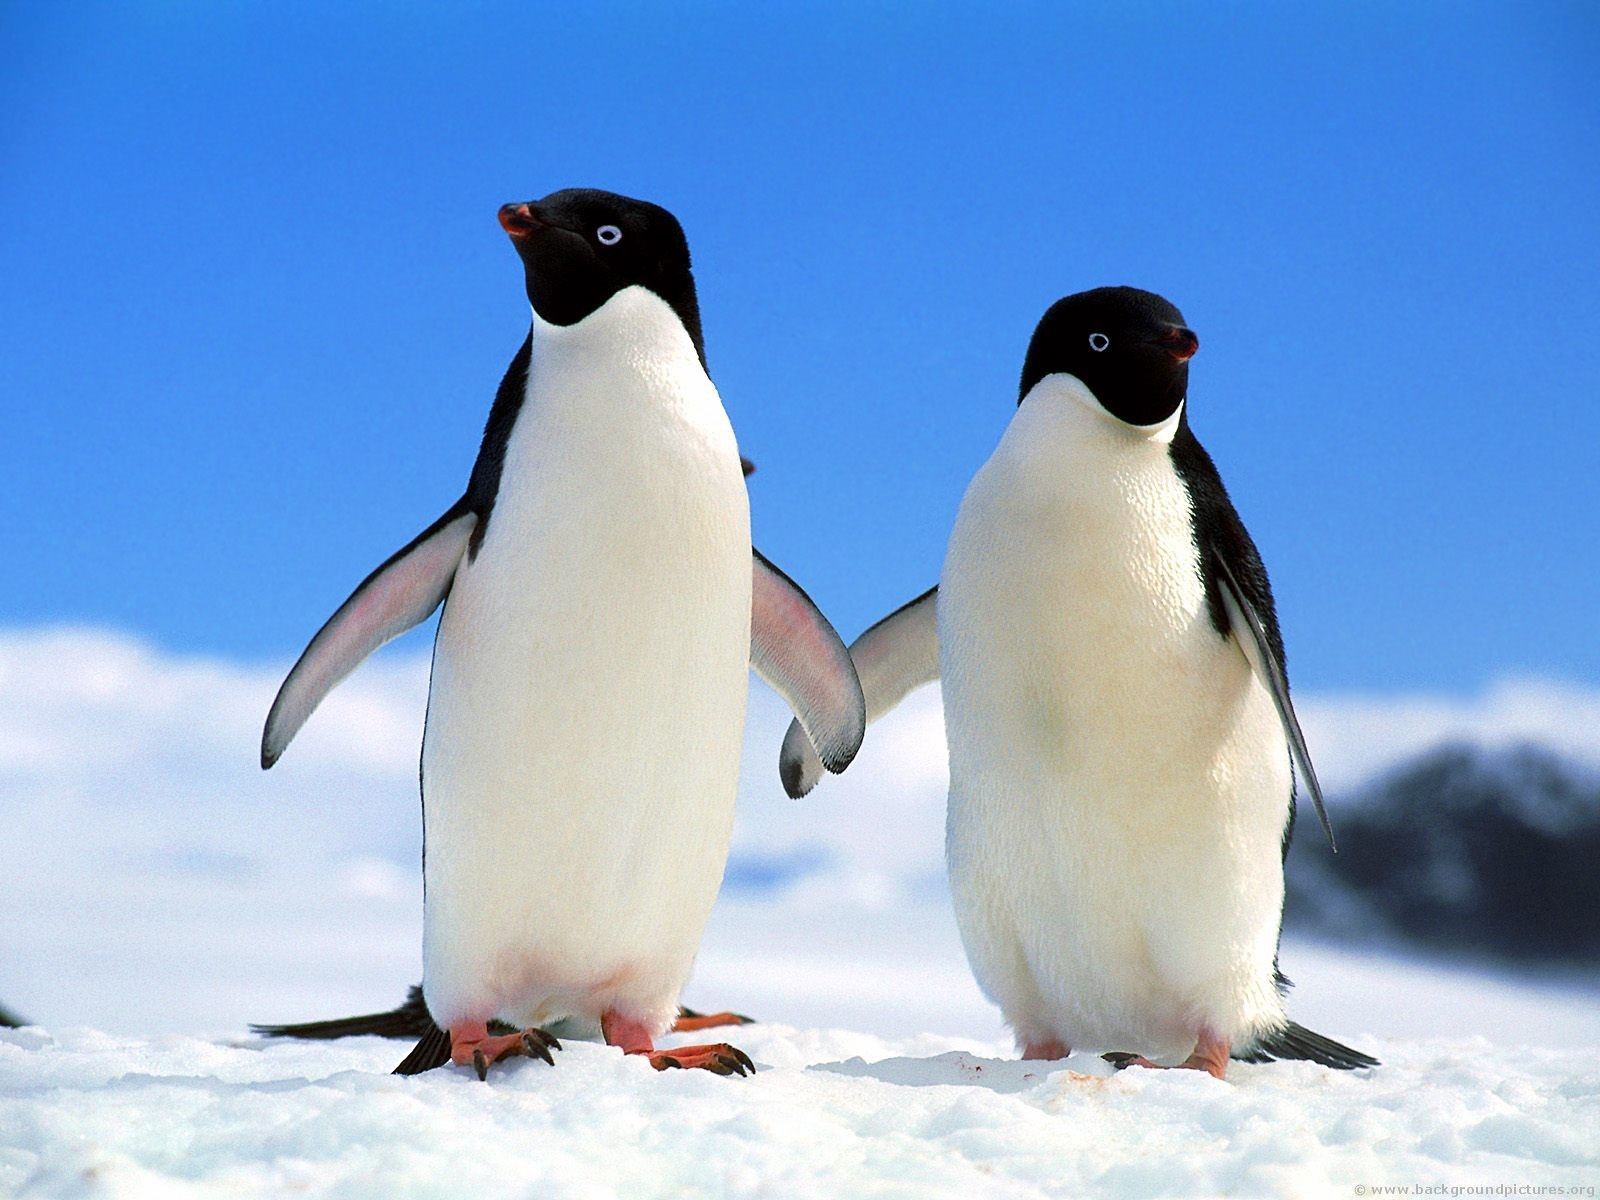 69 best images about Penguins and more Penguins on Pinterest ...